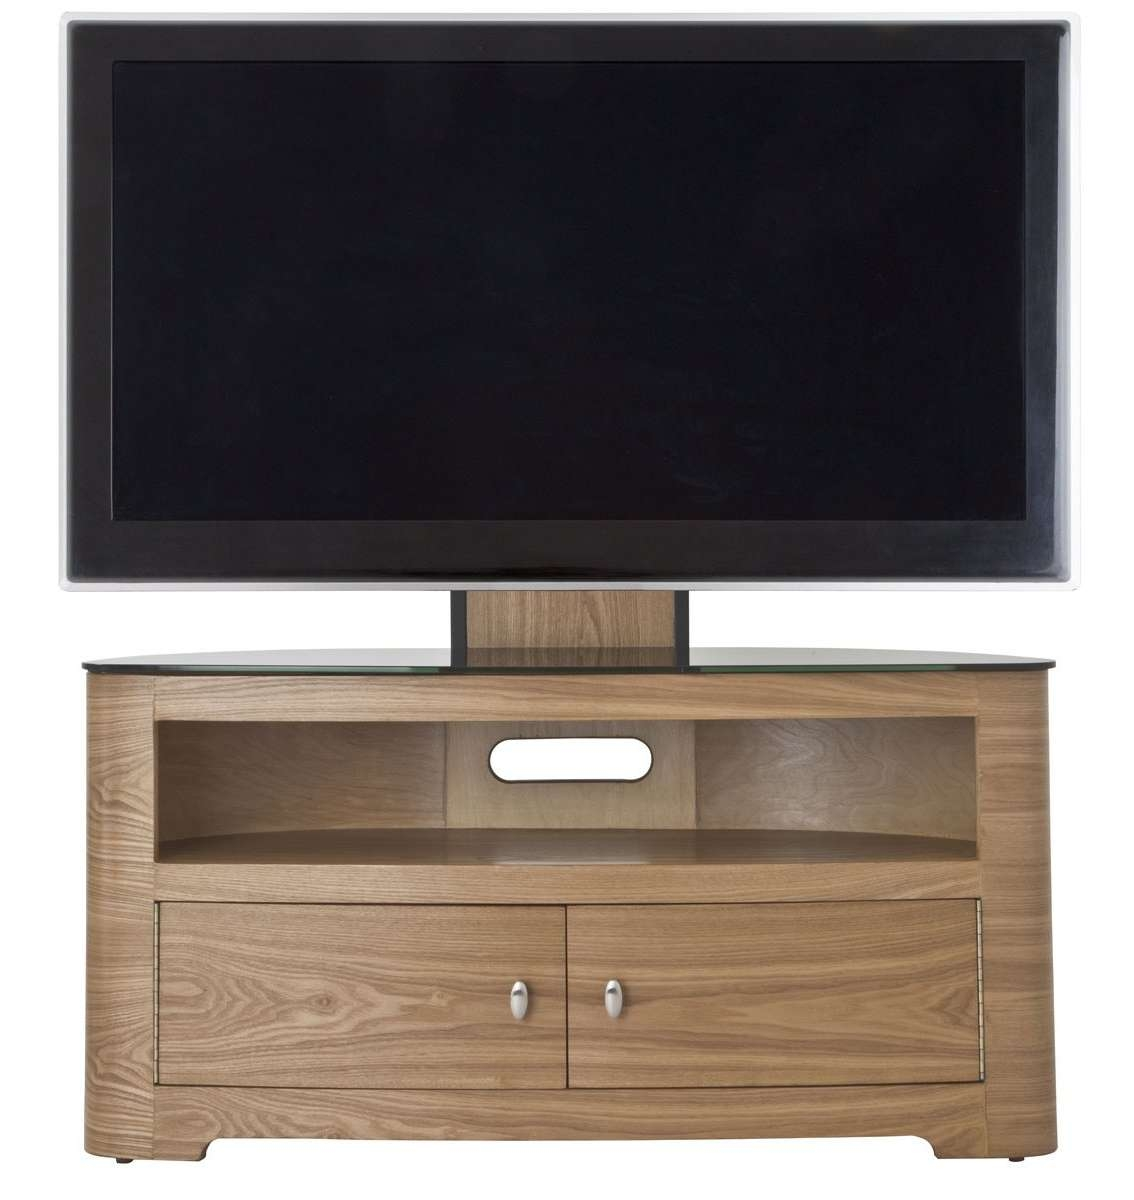 Avf Blenheim Oak Cantilever Tv Stand Regarding Oak Tv Stands Furniture (View 3 of 15)